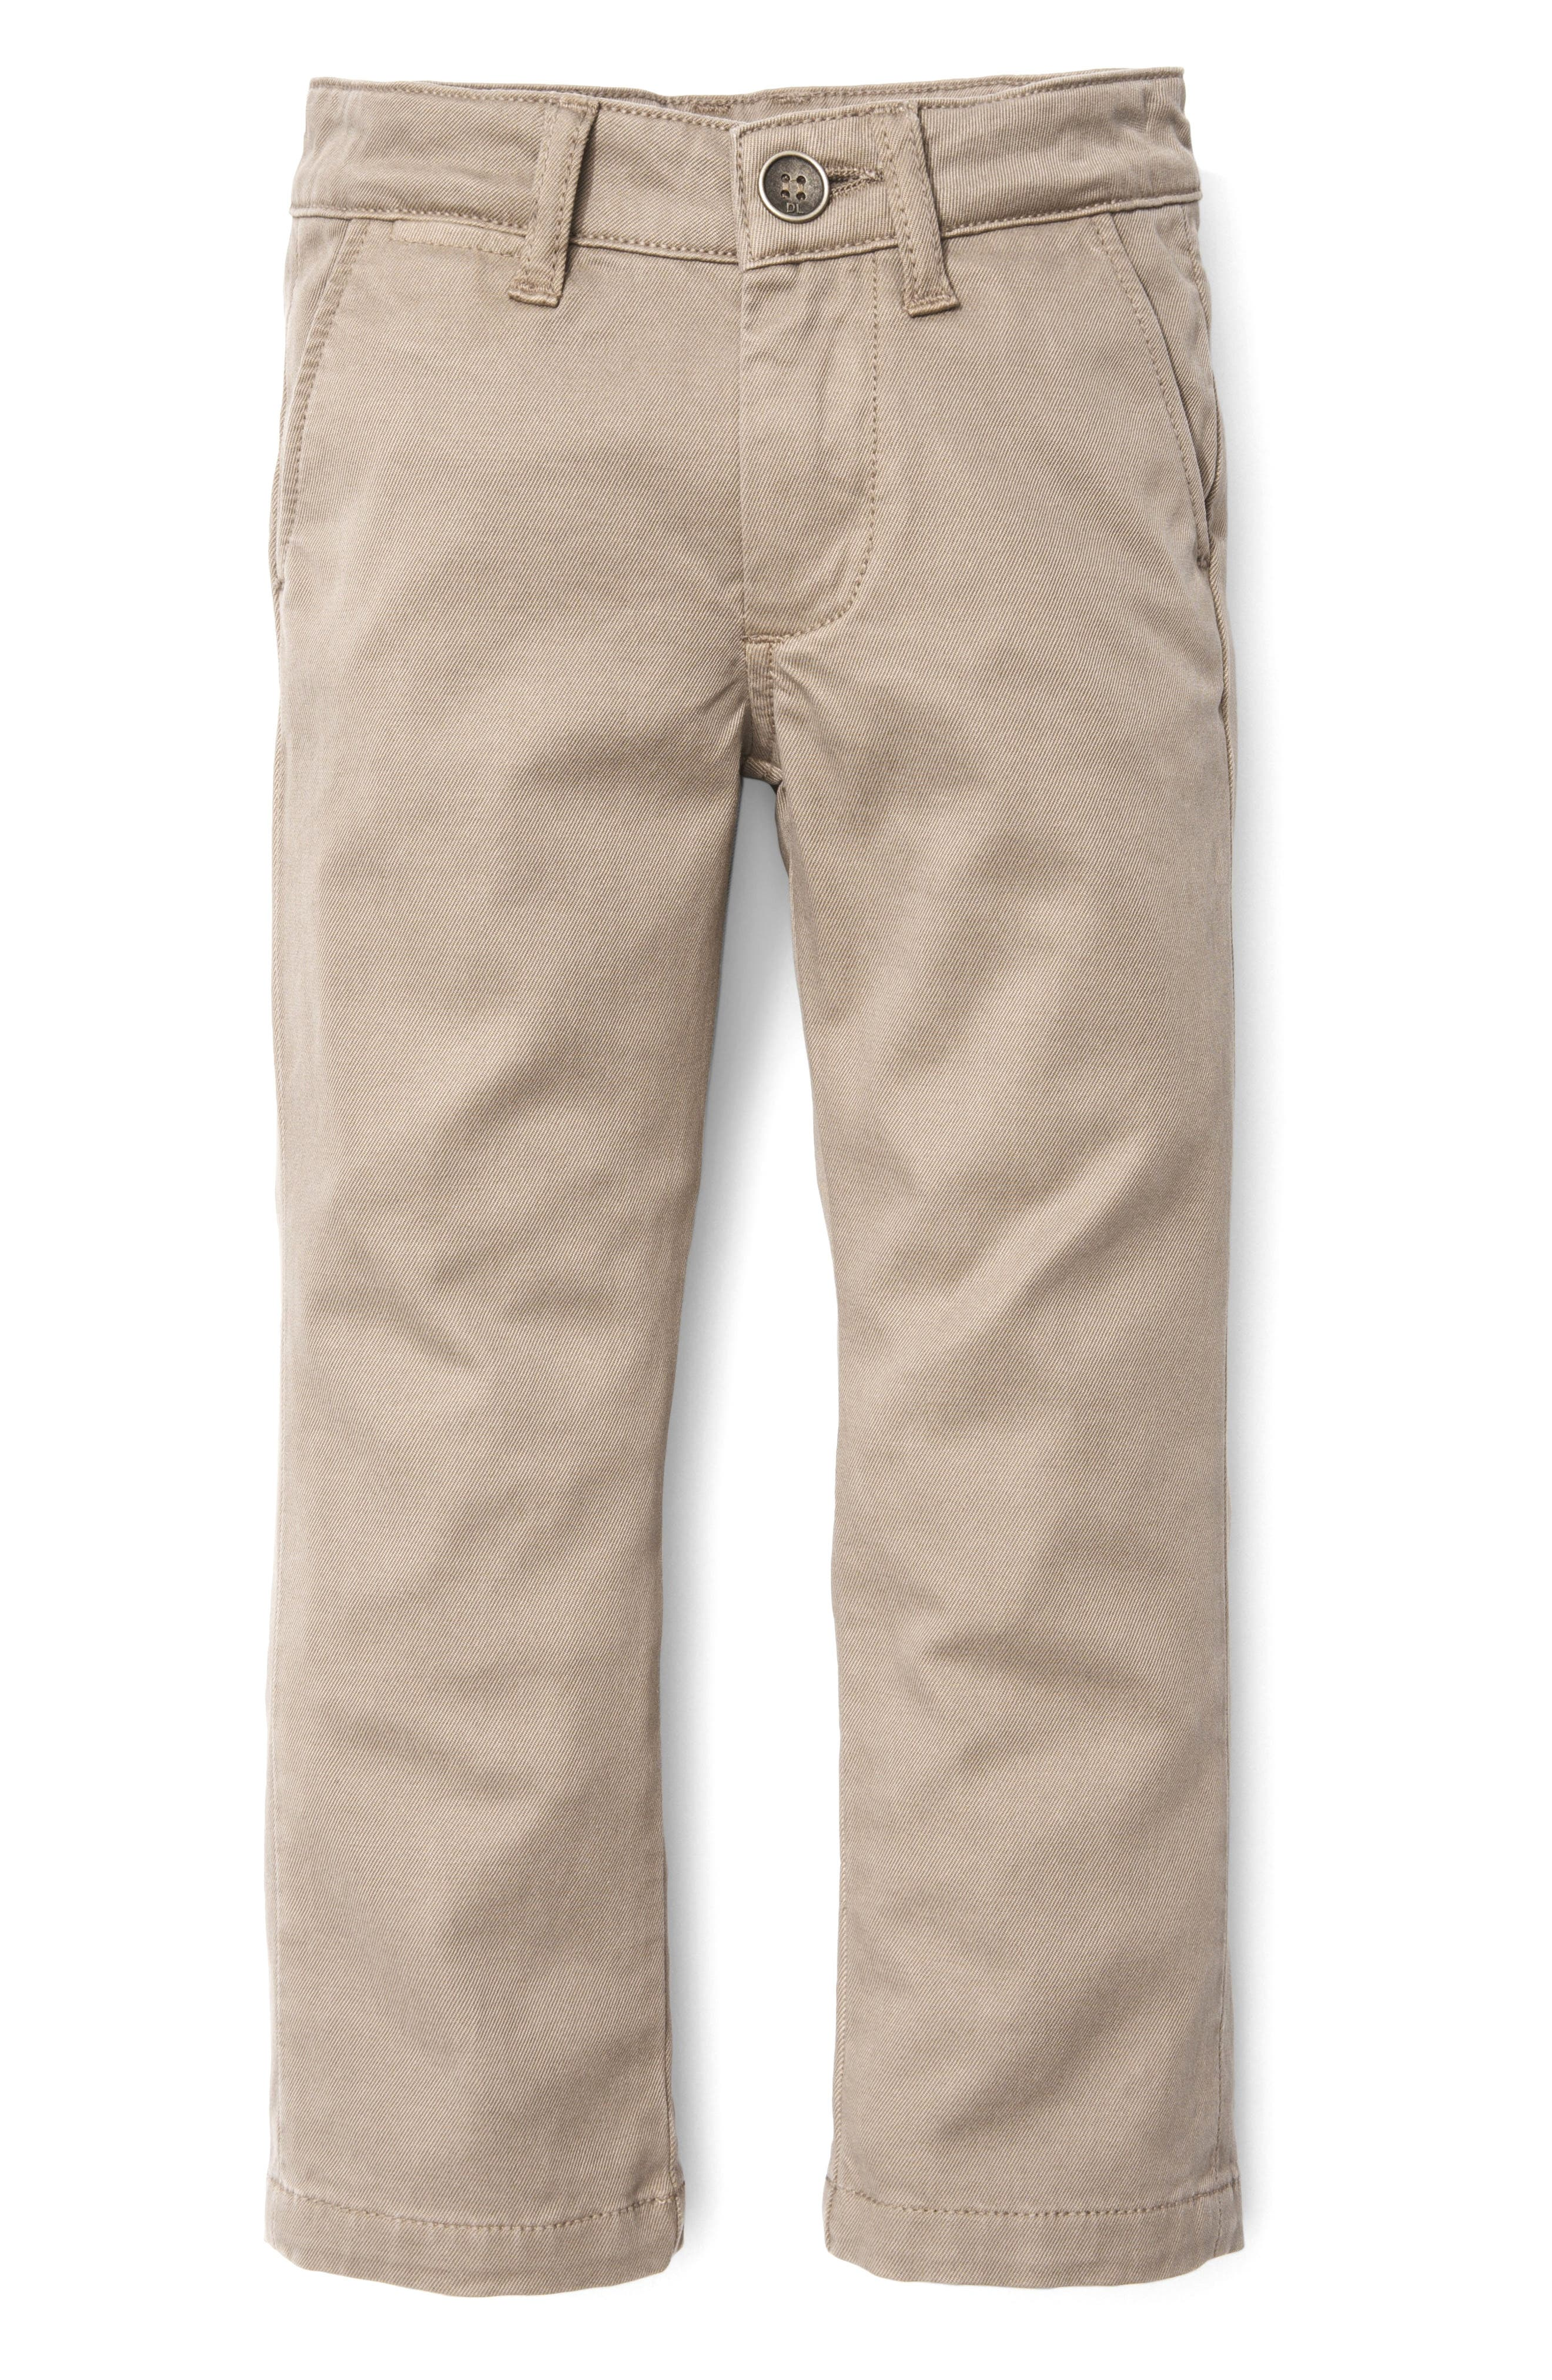 Timmy Slim Fit Chinos,                         Main,                         color, 251